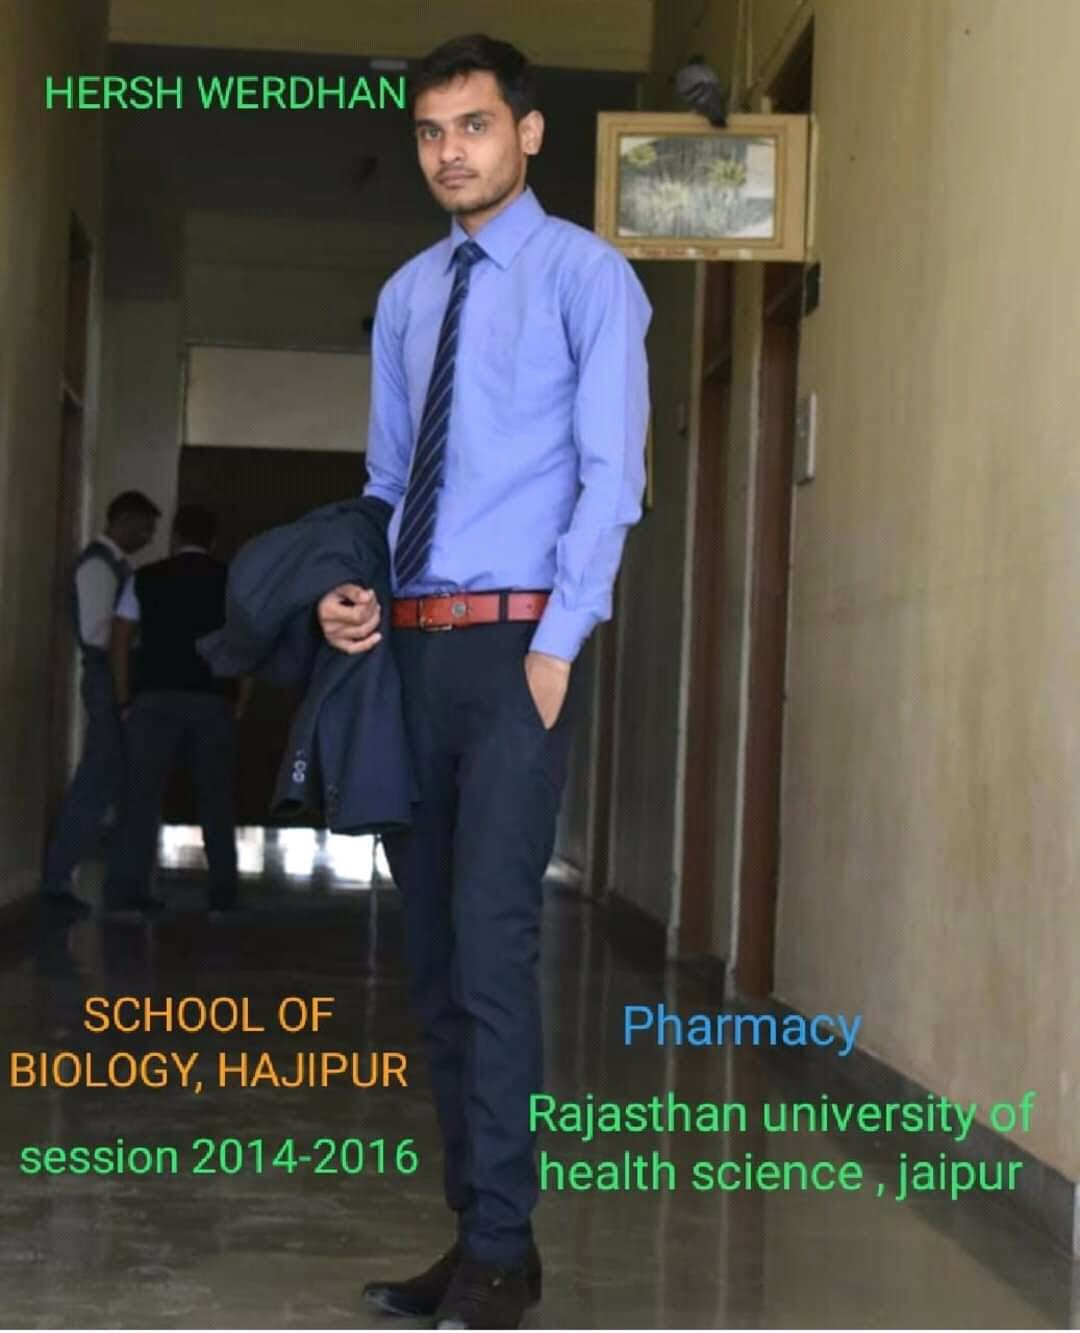 school of biology hajipur